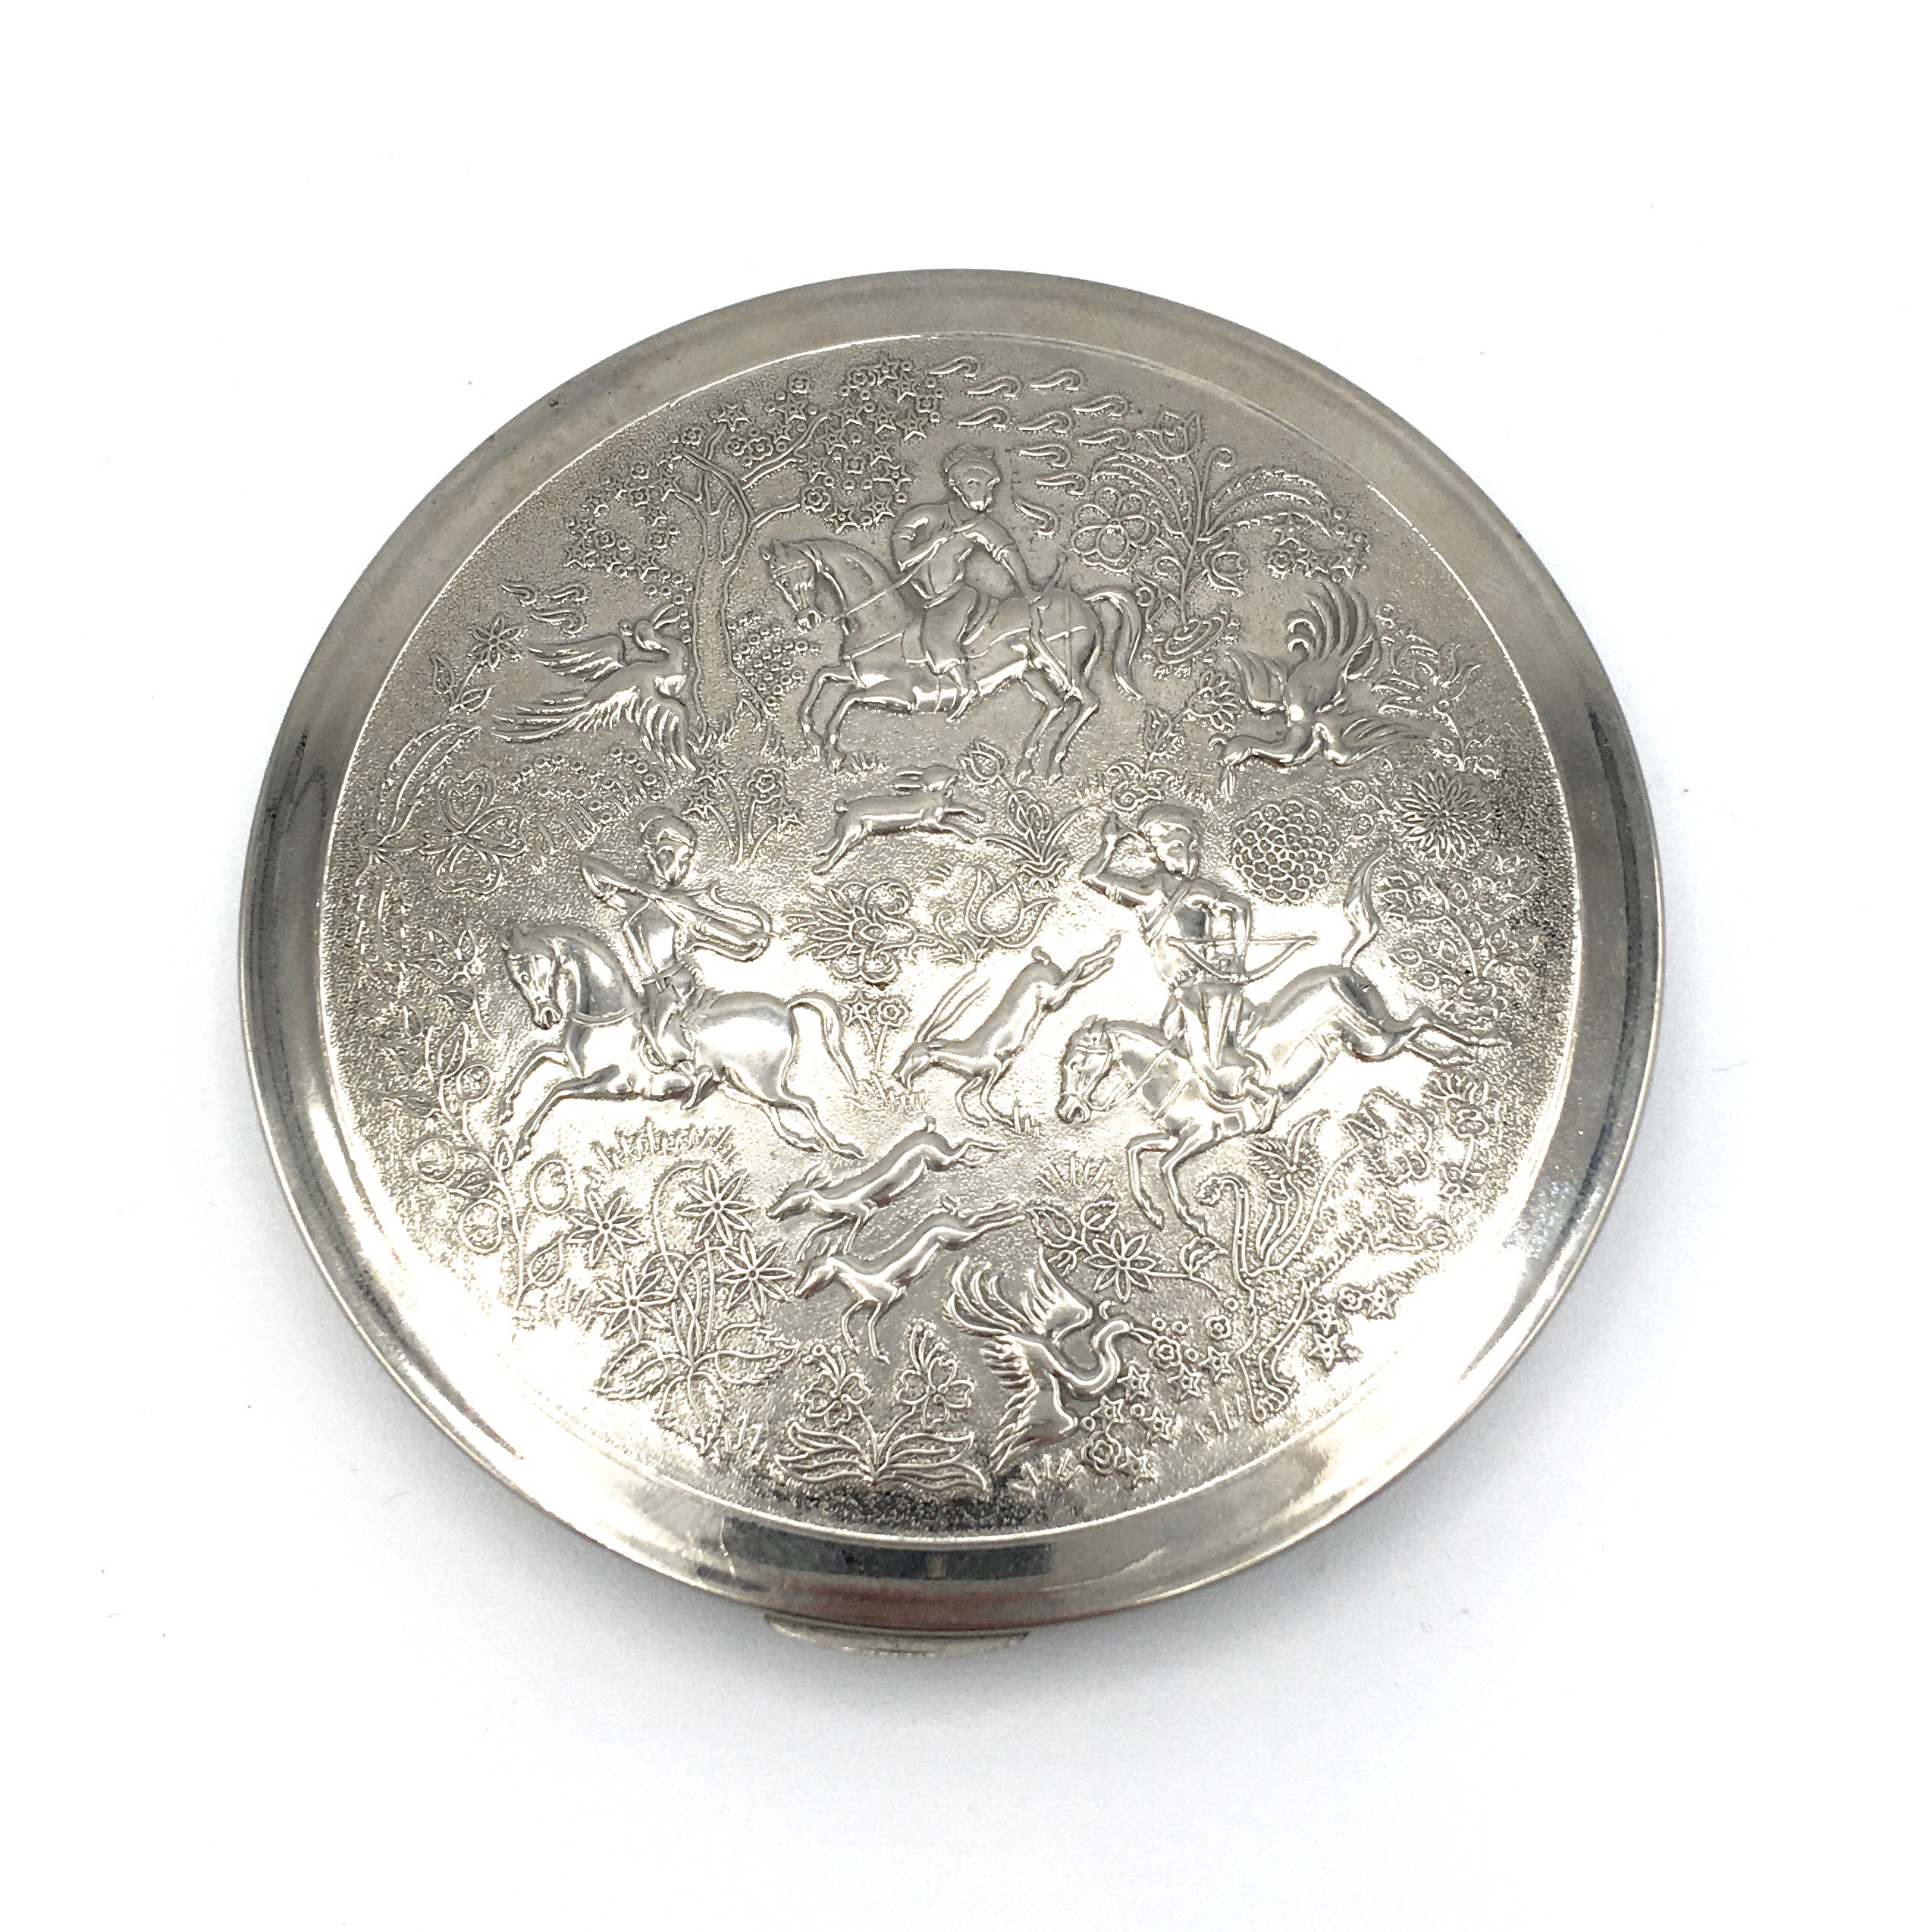 Engraved Designed Compact